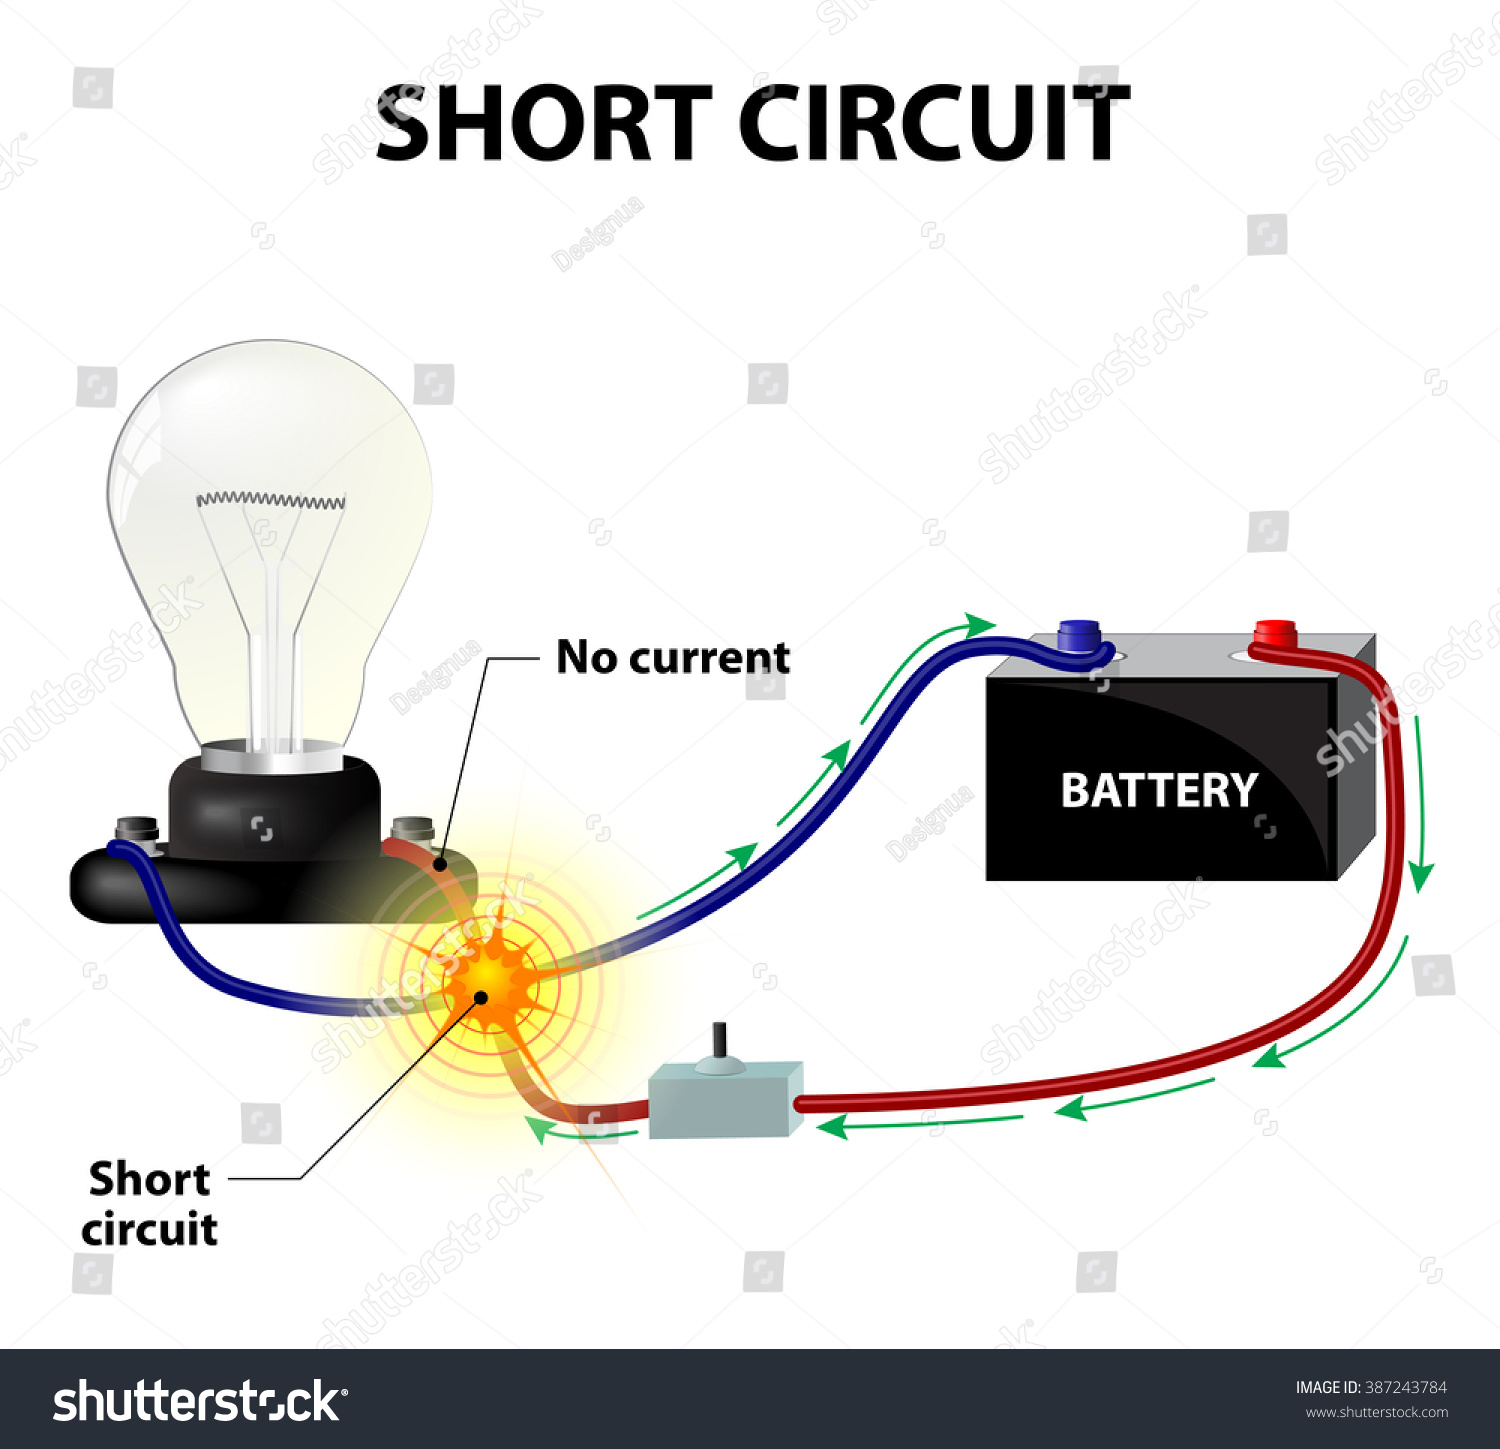 short circuit wiring diagram wiring library. Black Bedroom Furniture Sets. Home Design Ideas